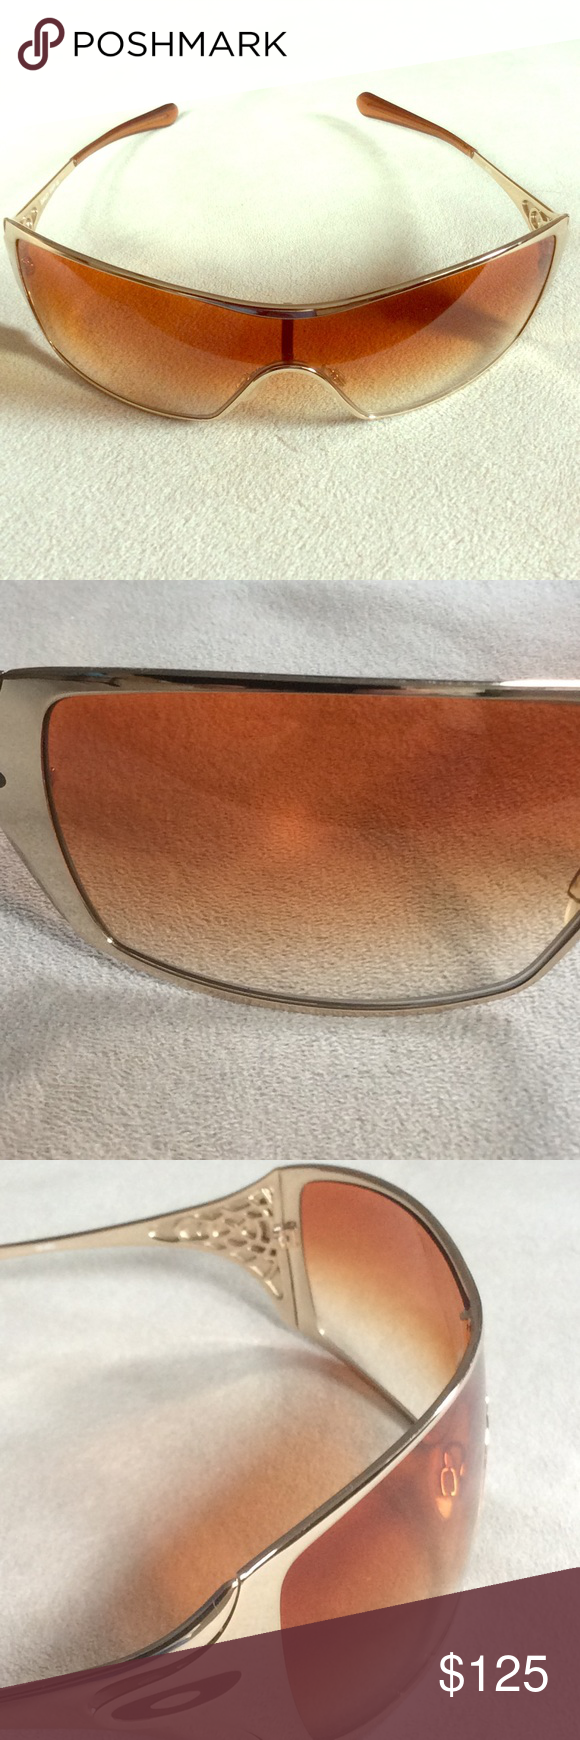 4fcbff9523e15 Woman s Oakley Dart Gold Polished Sunglasses Gradient amber lenses.  Excellent condition and has seen very little wear. Purchased new for   199.99